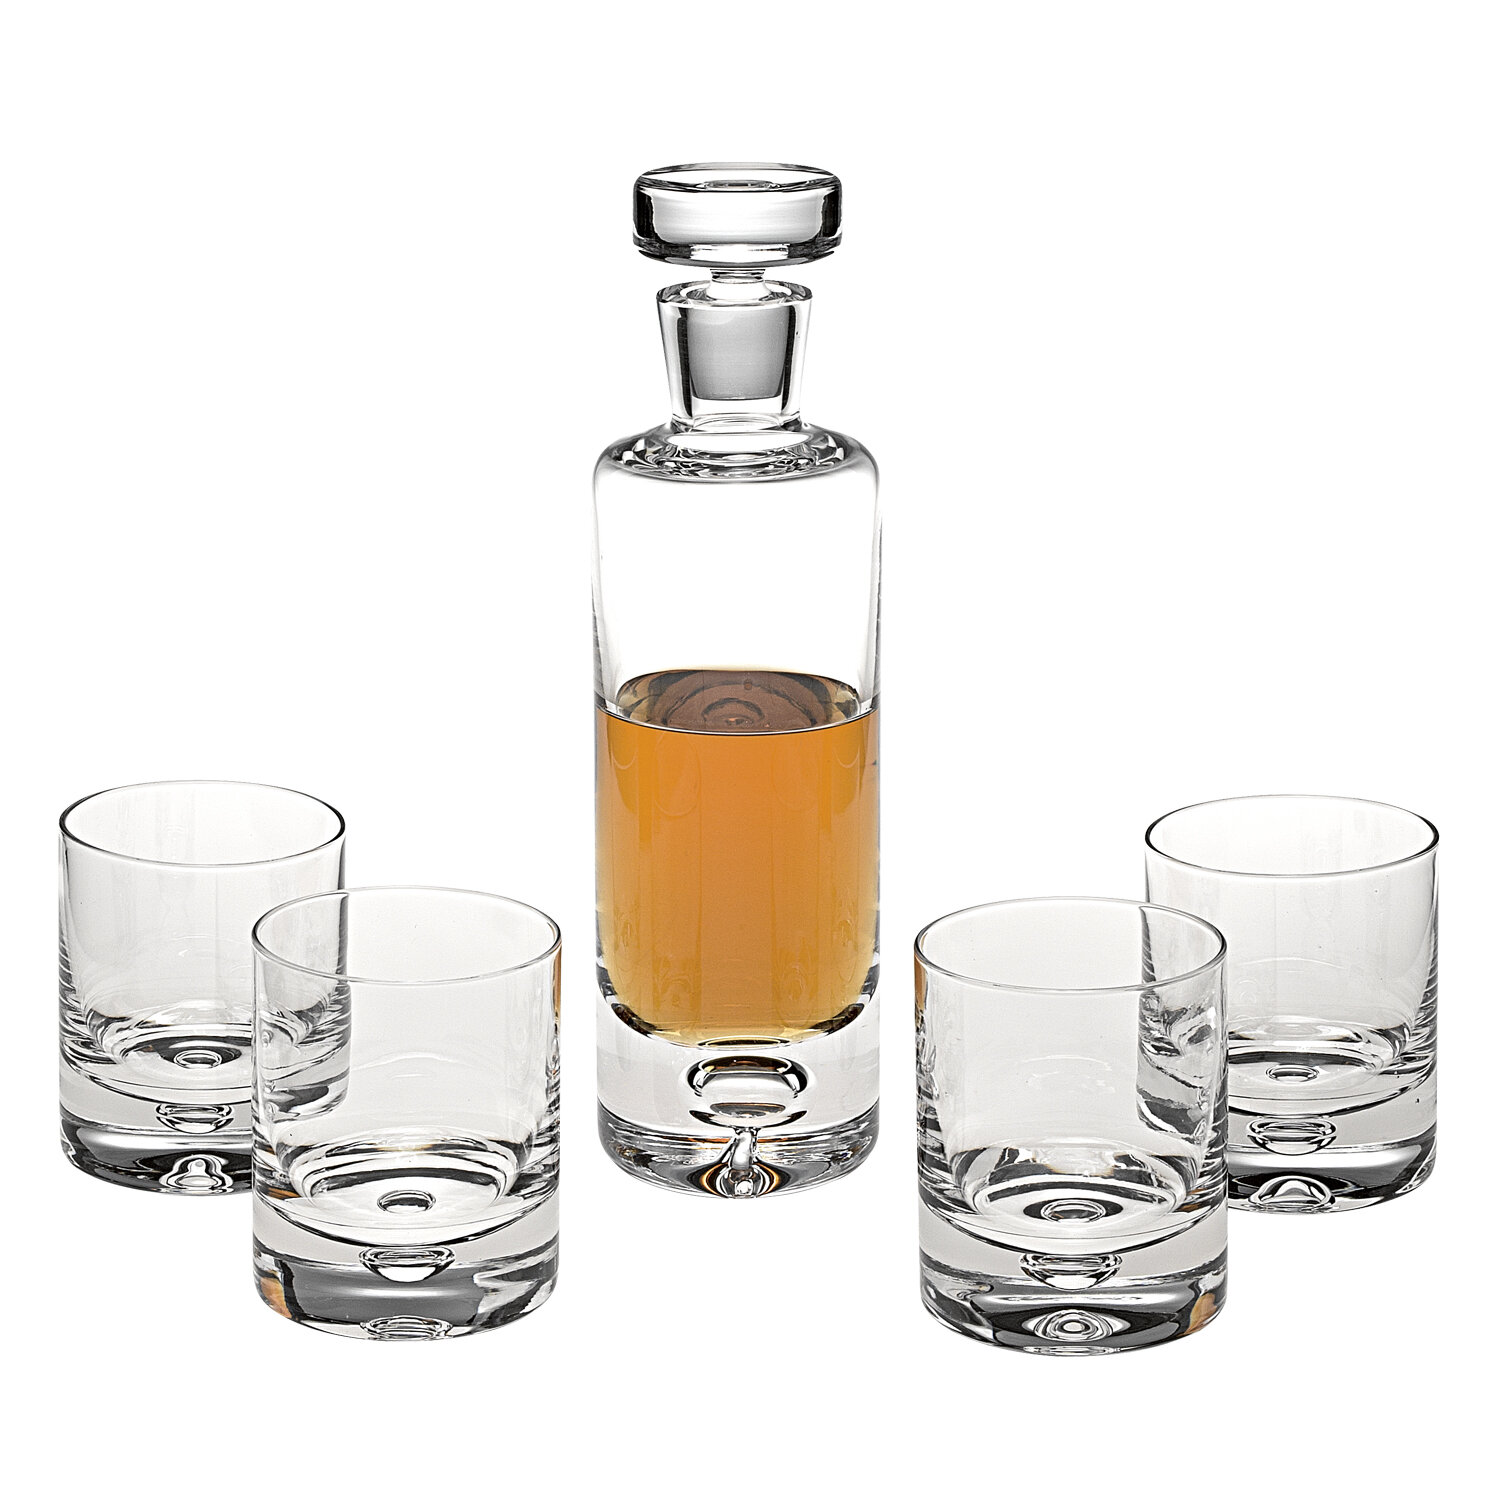 Darby Home Co Ginsburg 5 Piece Whiskey Decanter Set